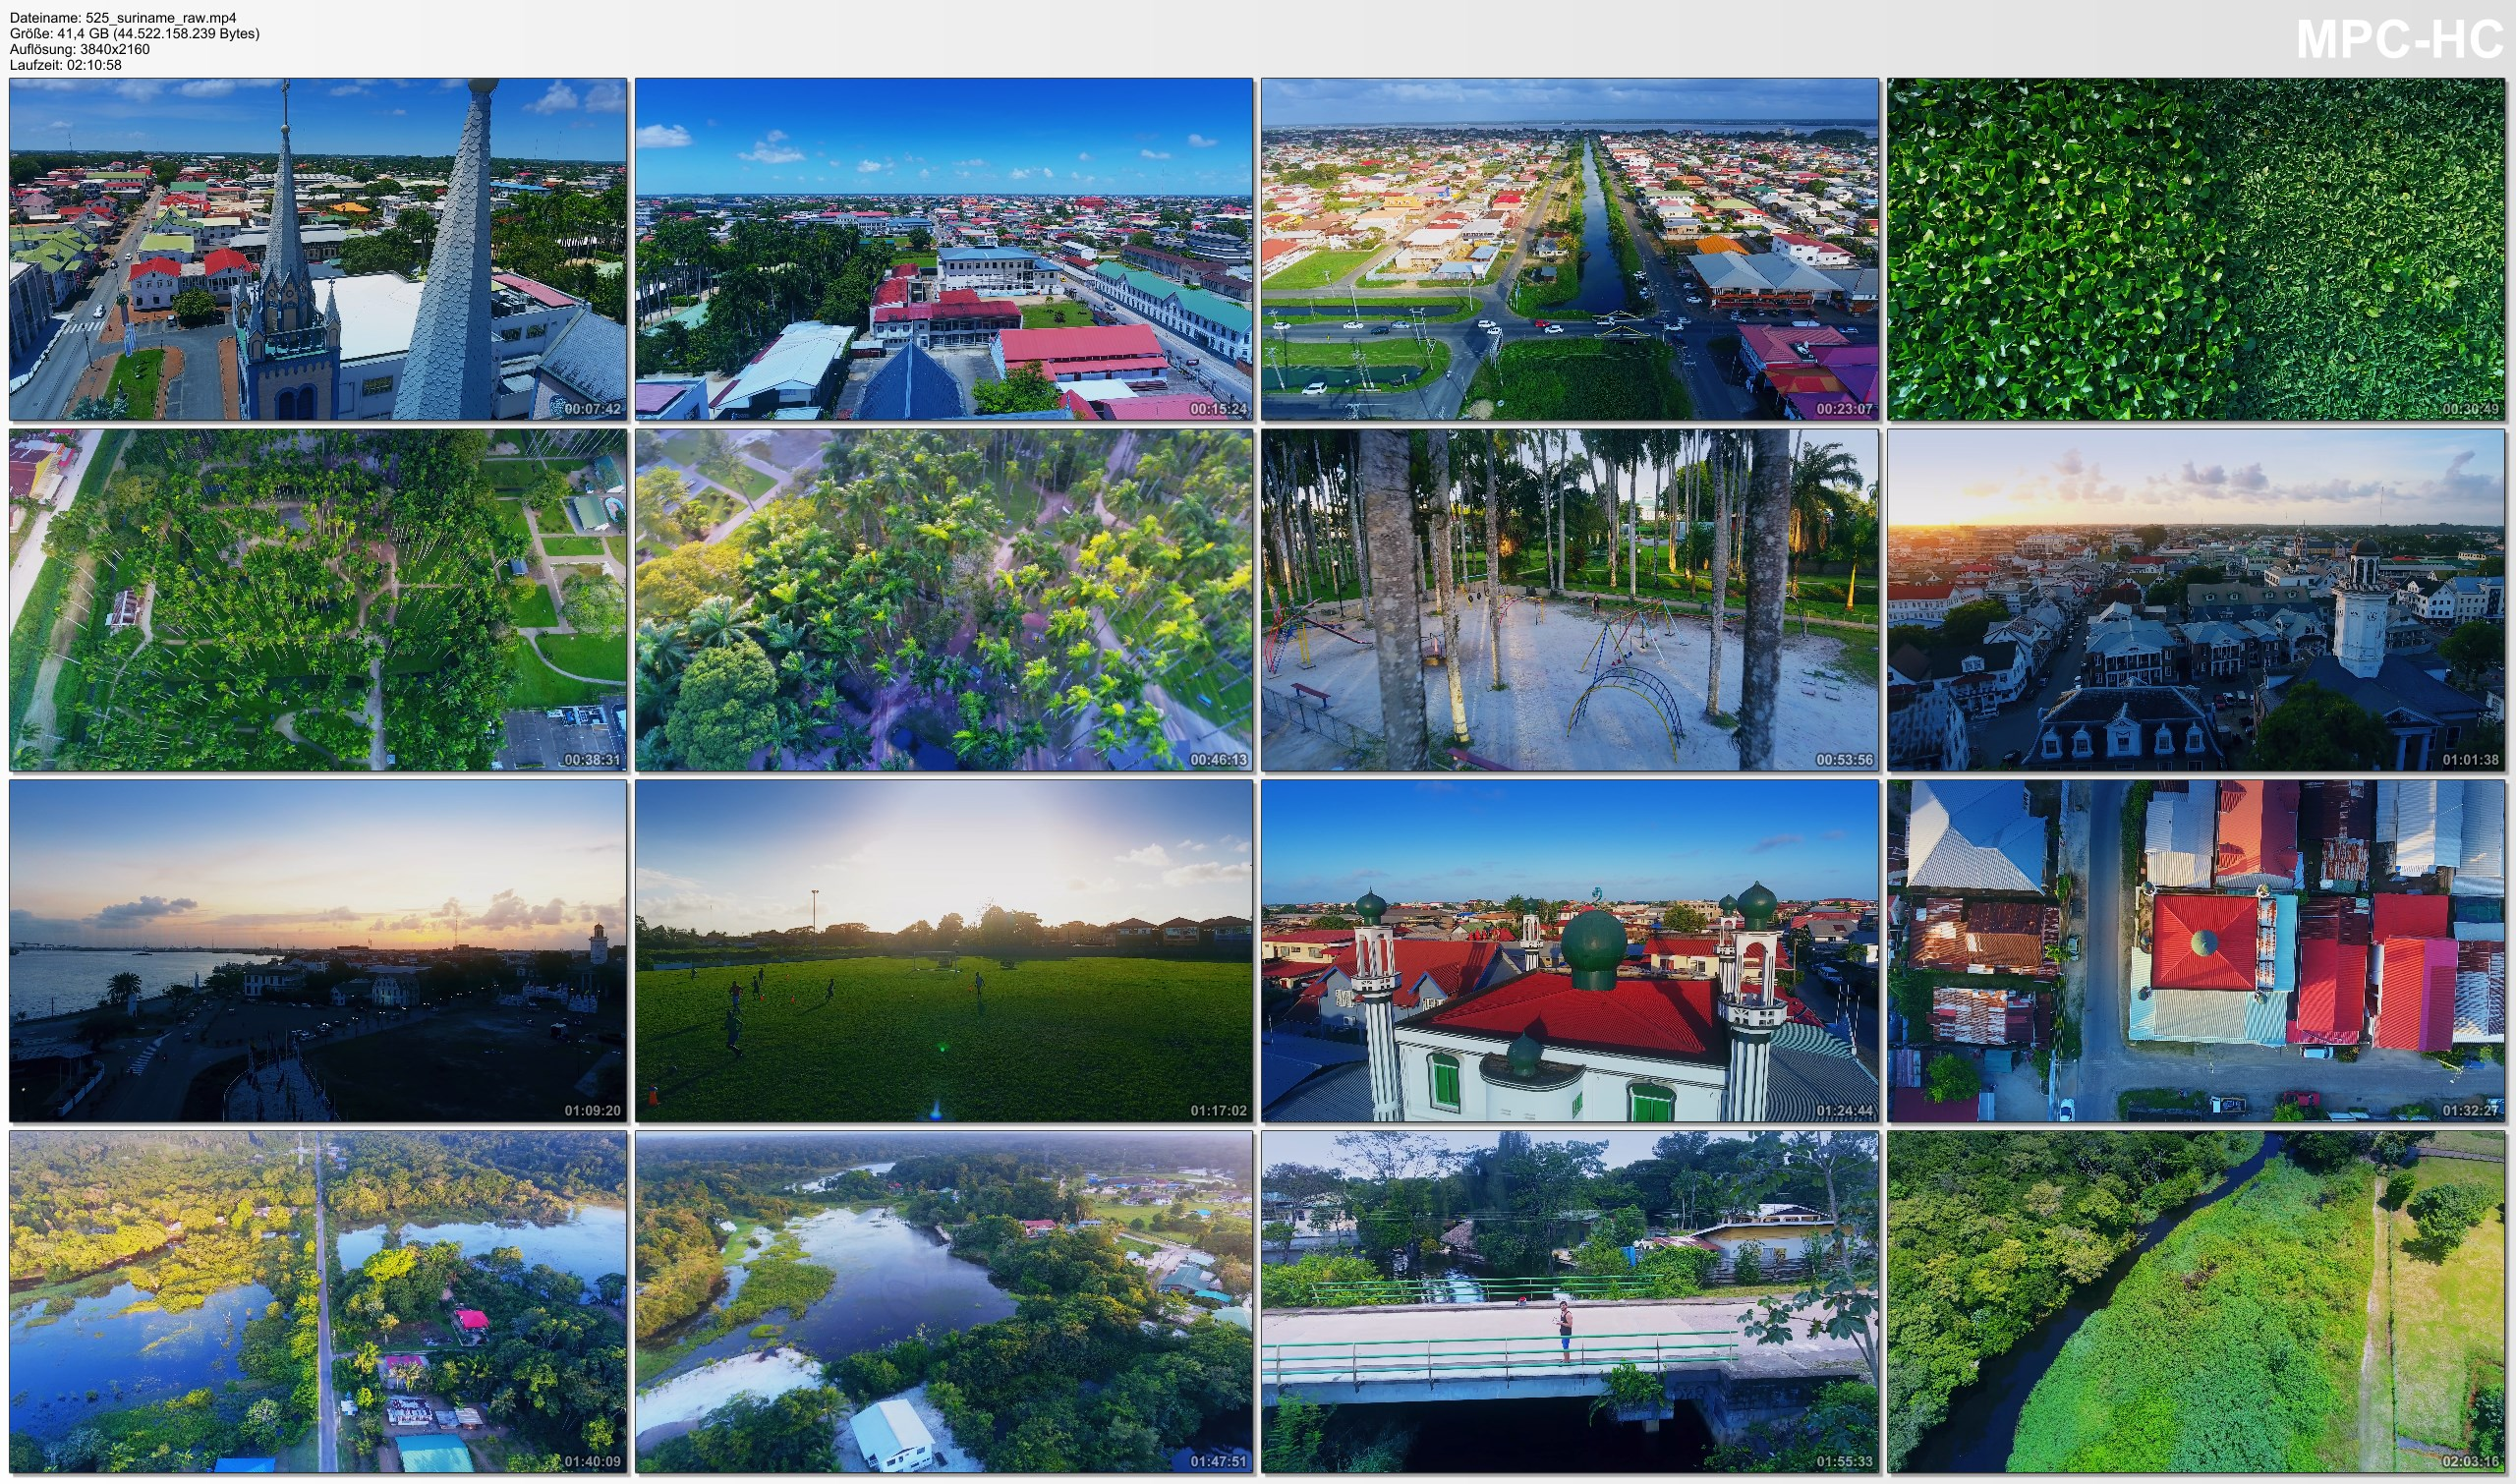 Drone Pictures from Video 【4K】Drone RAW Footage | This is SURINAME 2020 | Capital City Paramaribo & More | UltraHD Stock Video